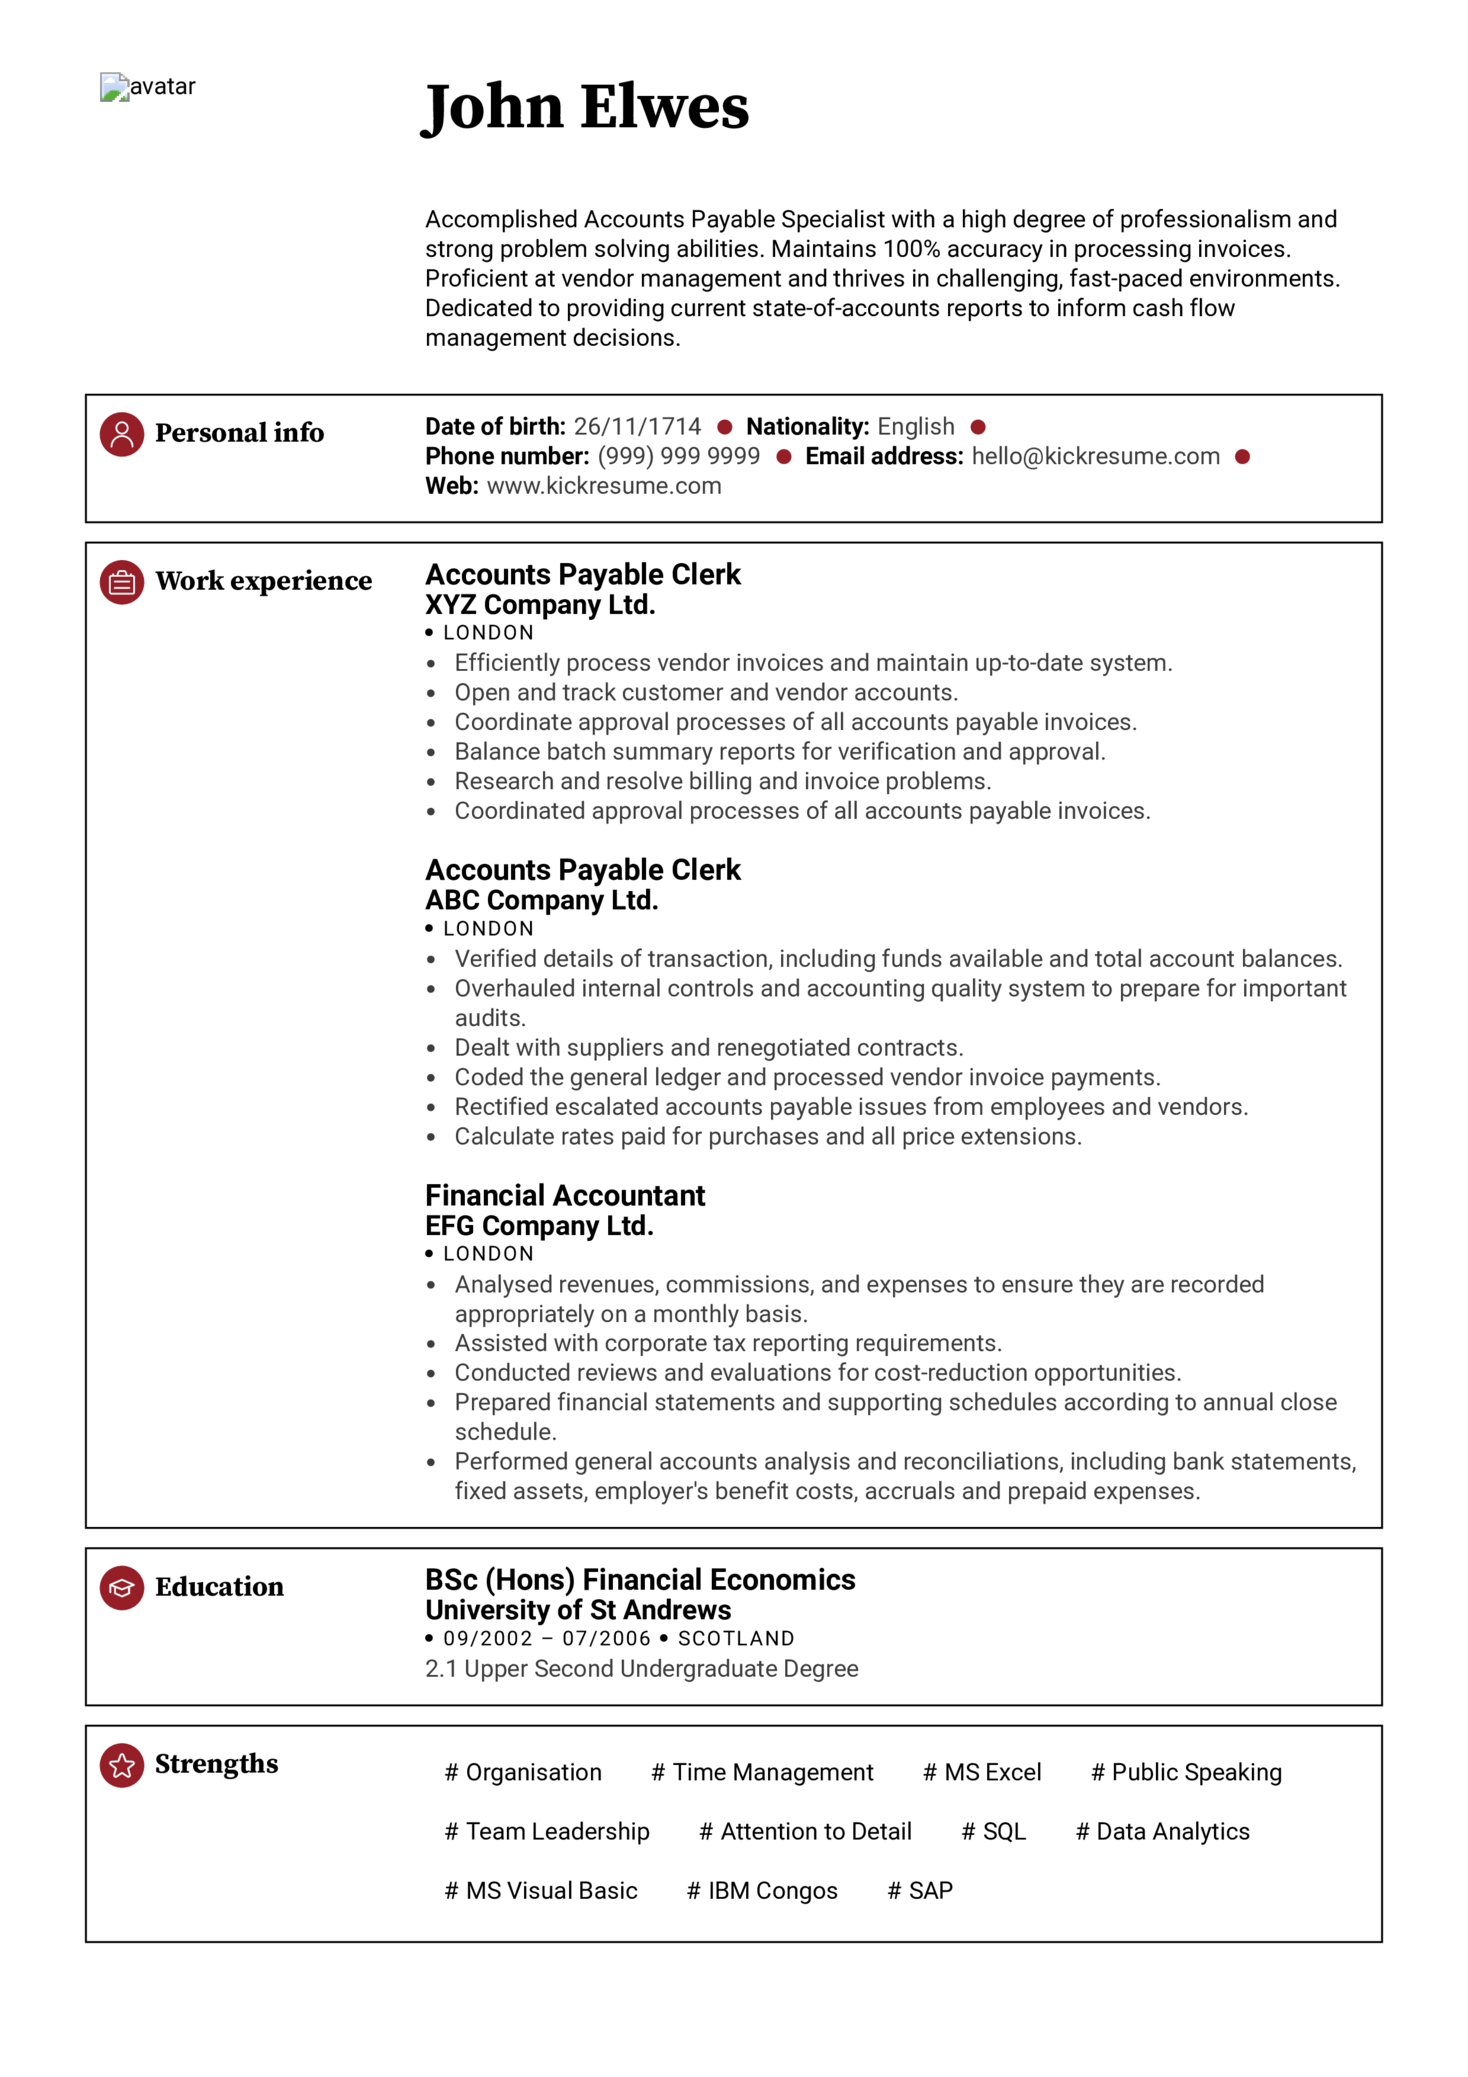 accountant sample resume - Teriz.yasamayolver.com